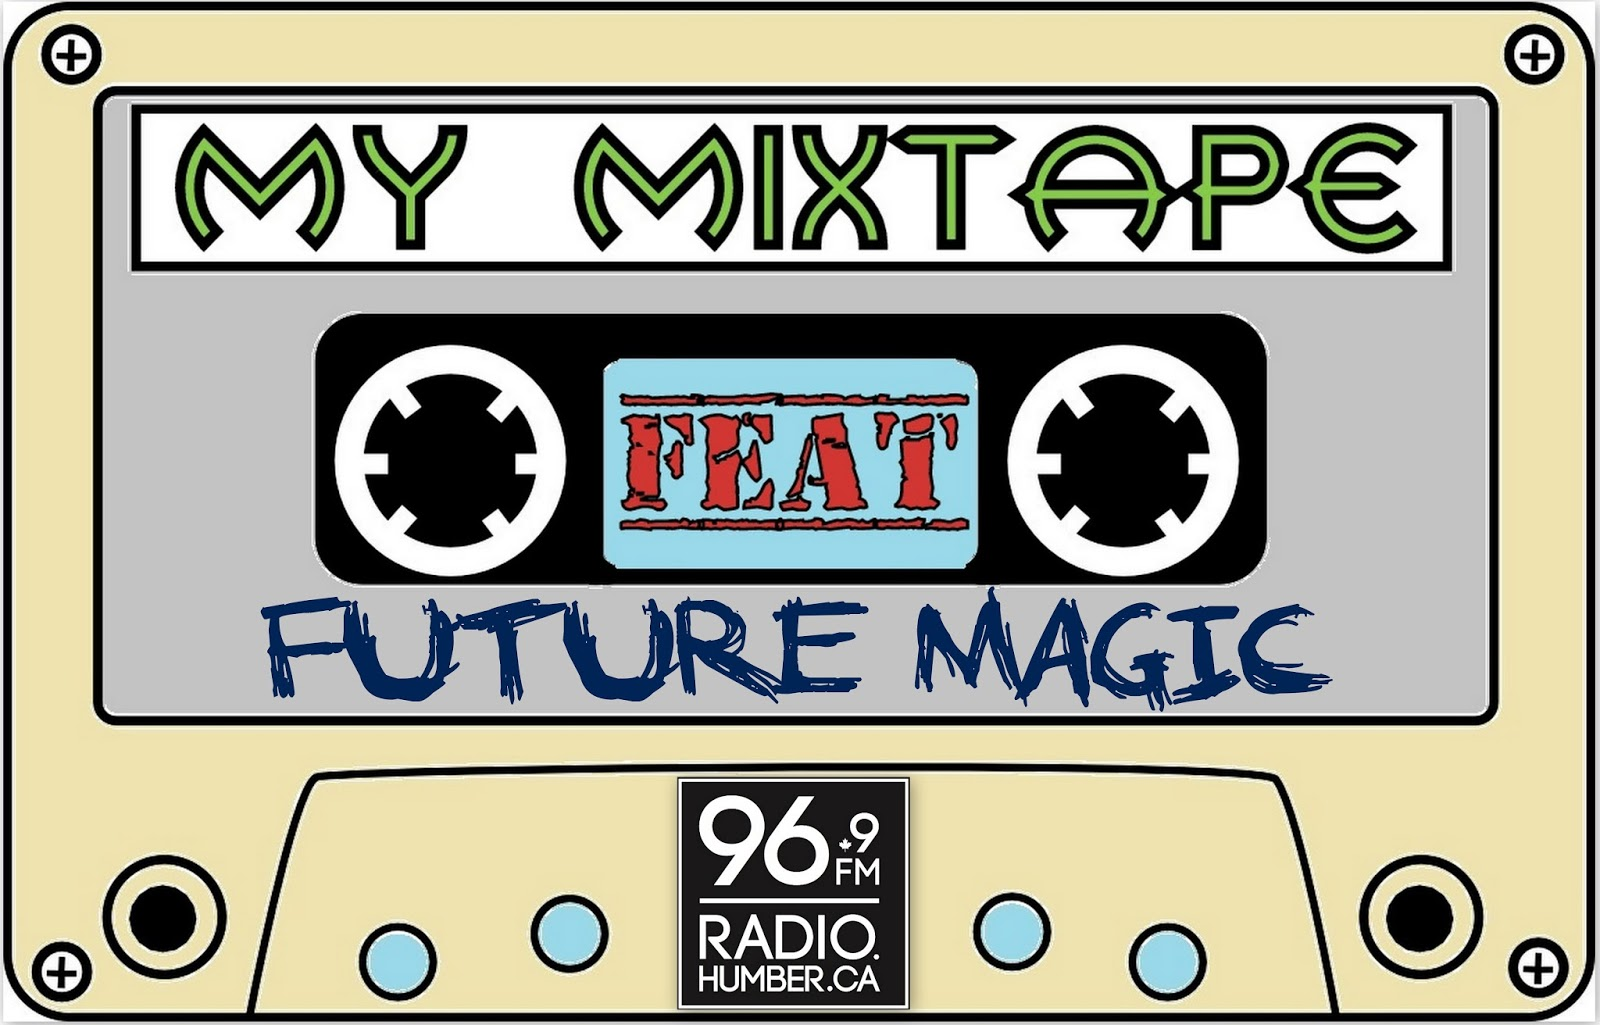 Future Mixtape Enlightenment For Your Ears My Mixtape Featuring Future Magic